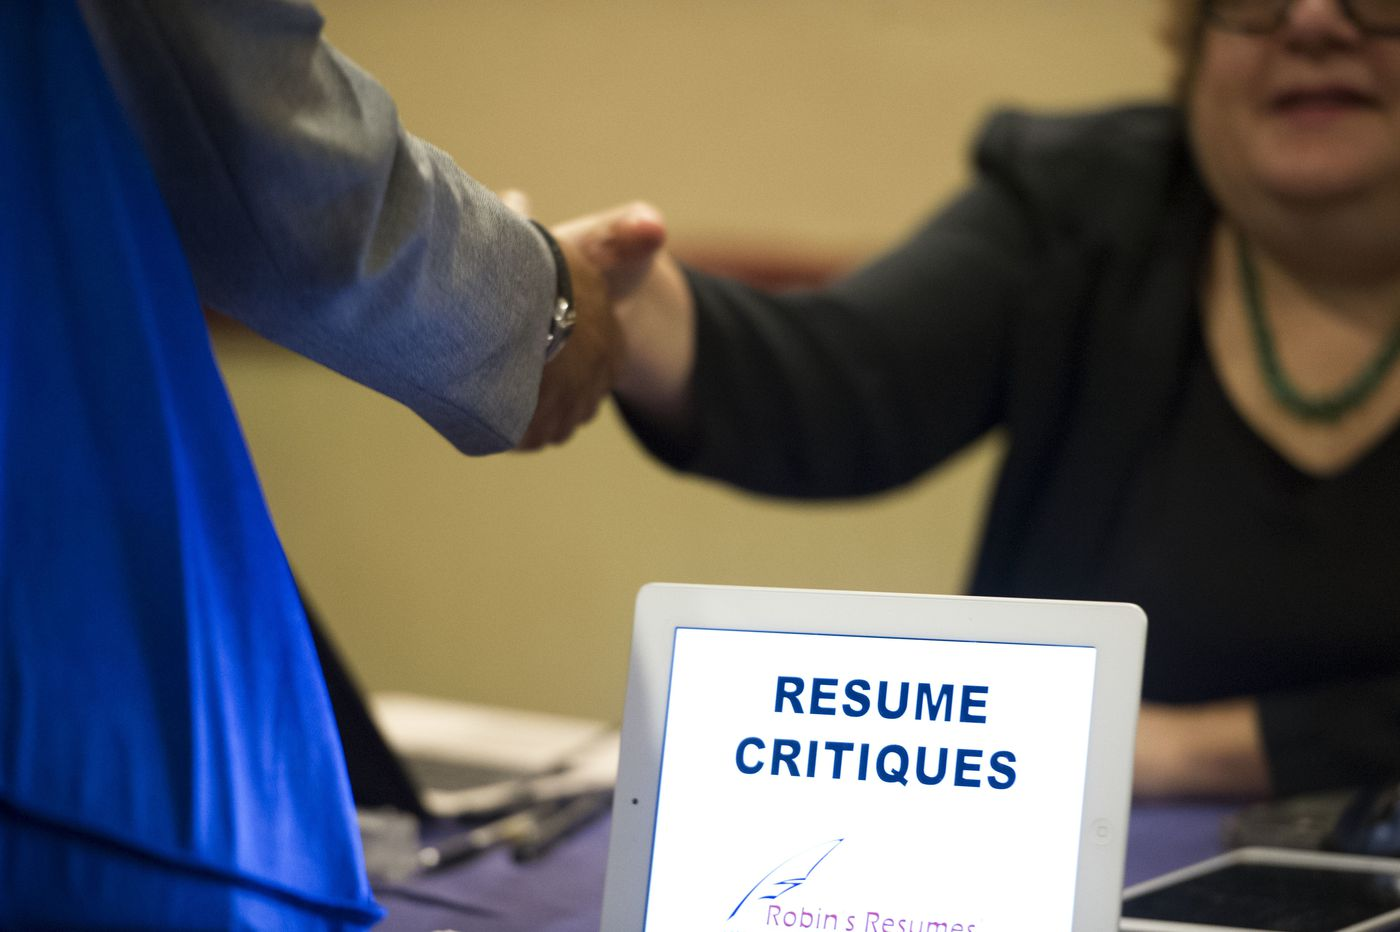 Philly's 'largest job fair' is on Thursday, with 130 employers including Aramark, Comcast and Wawa